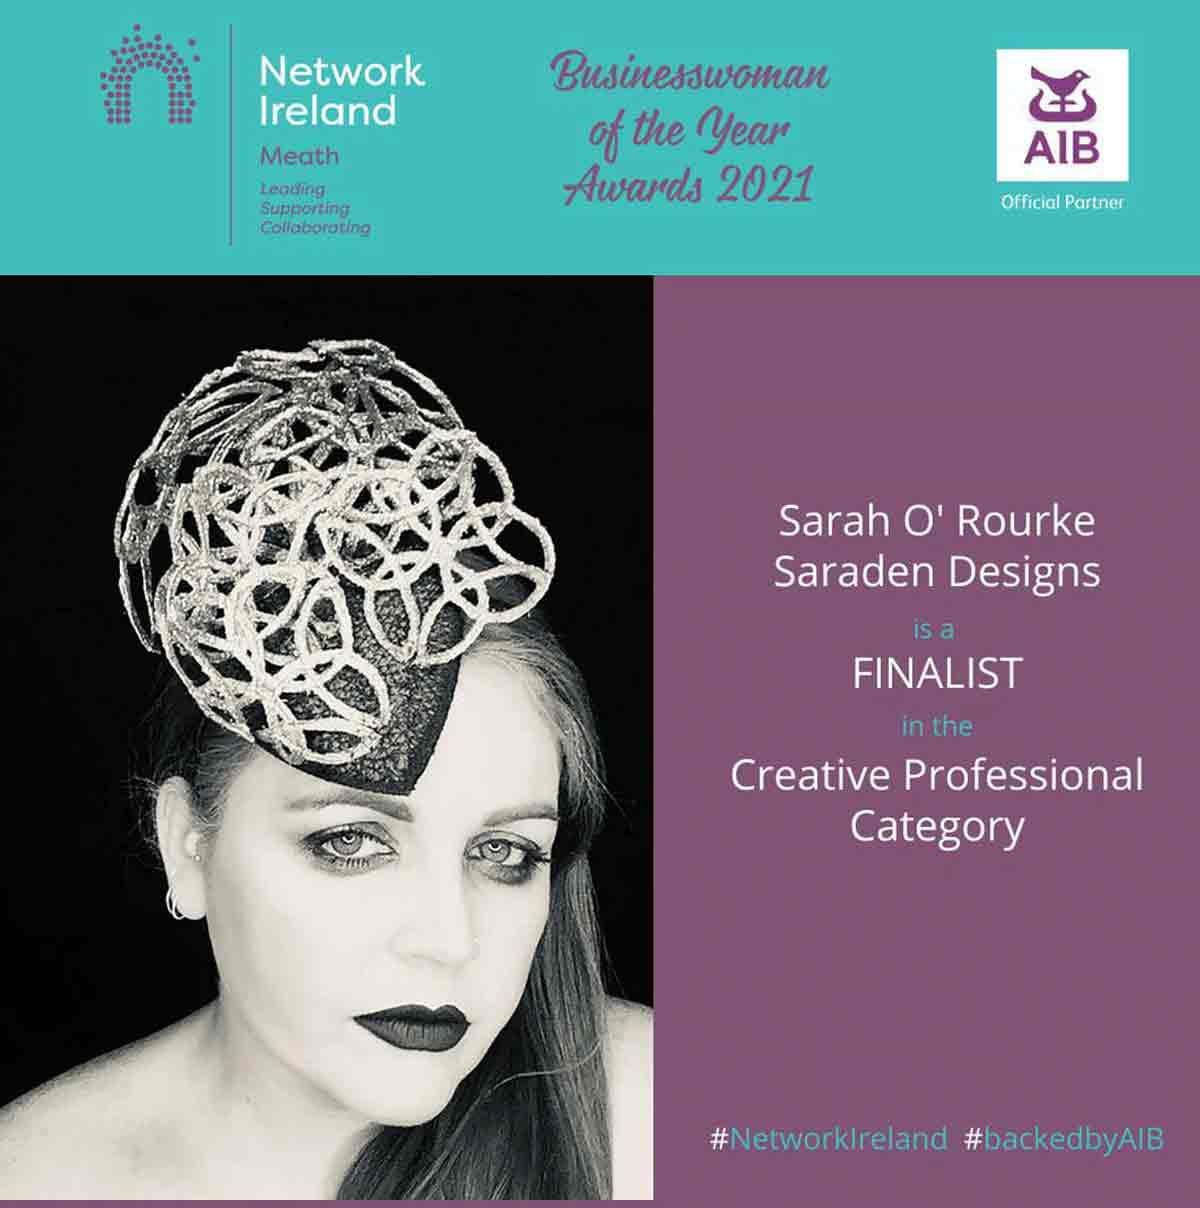 Saraden Designs Millinery Atelier finalist in the Creative Professional Category Network Ireland